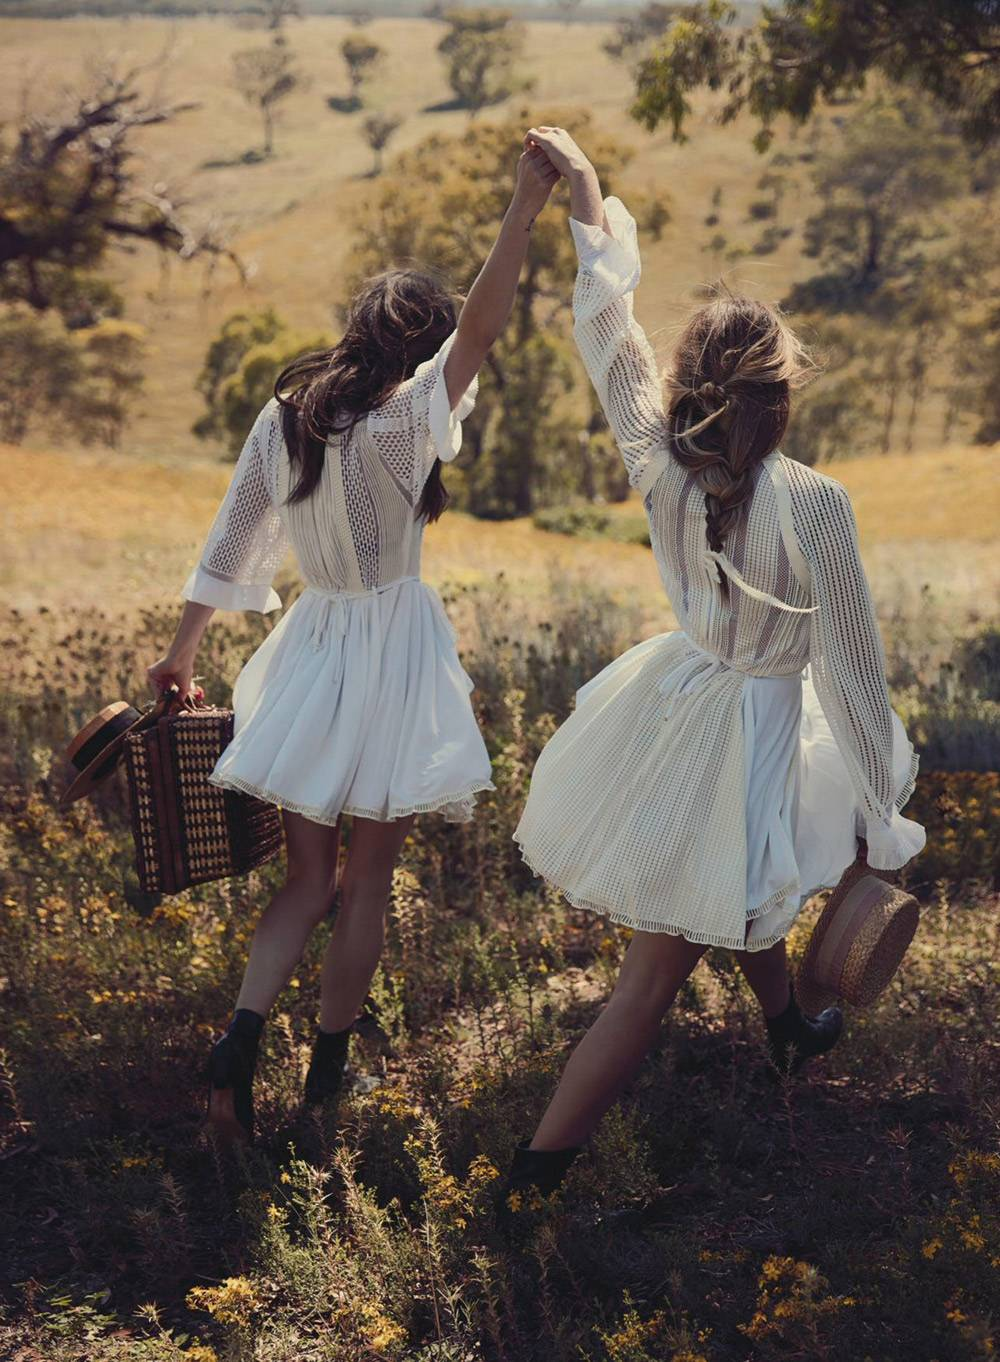 Teresa Palmer and Phoebe Tonkin by Will Davidson for Vogue Australia March 2015